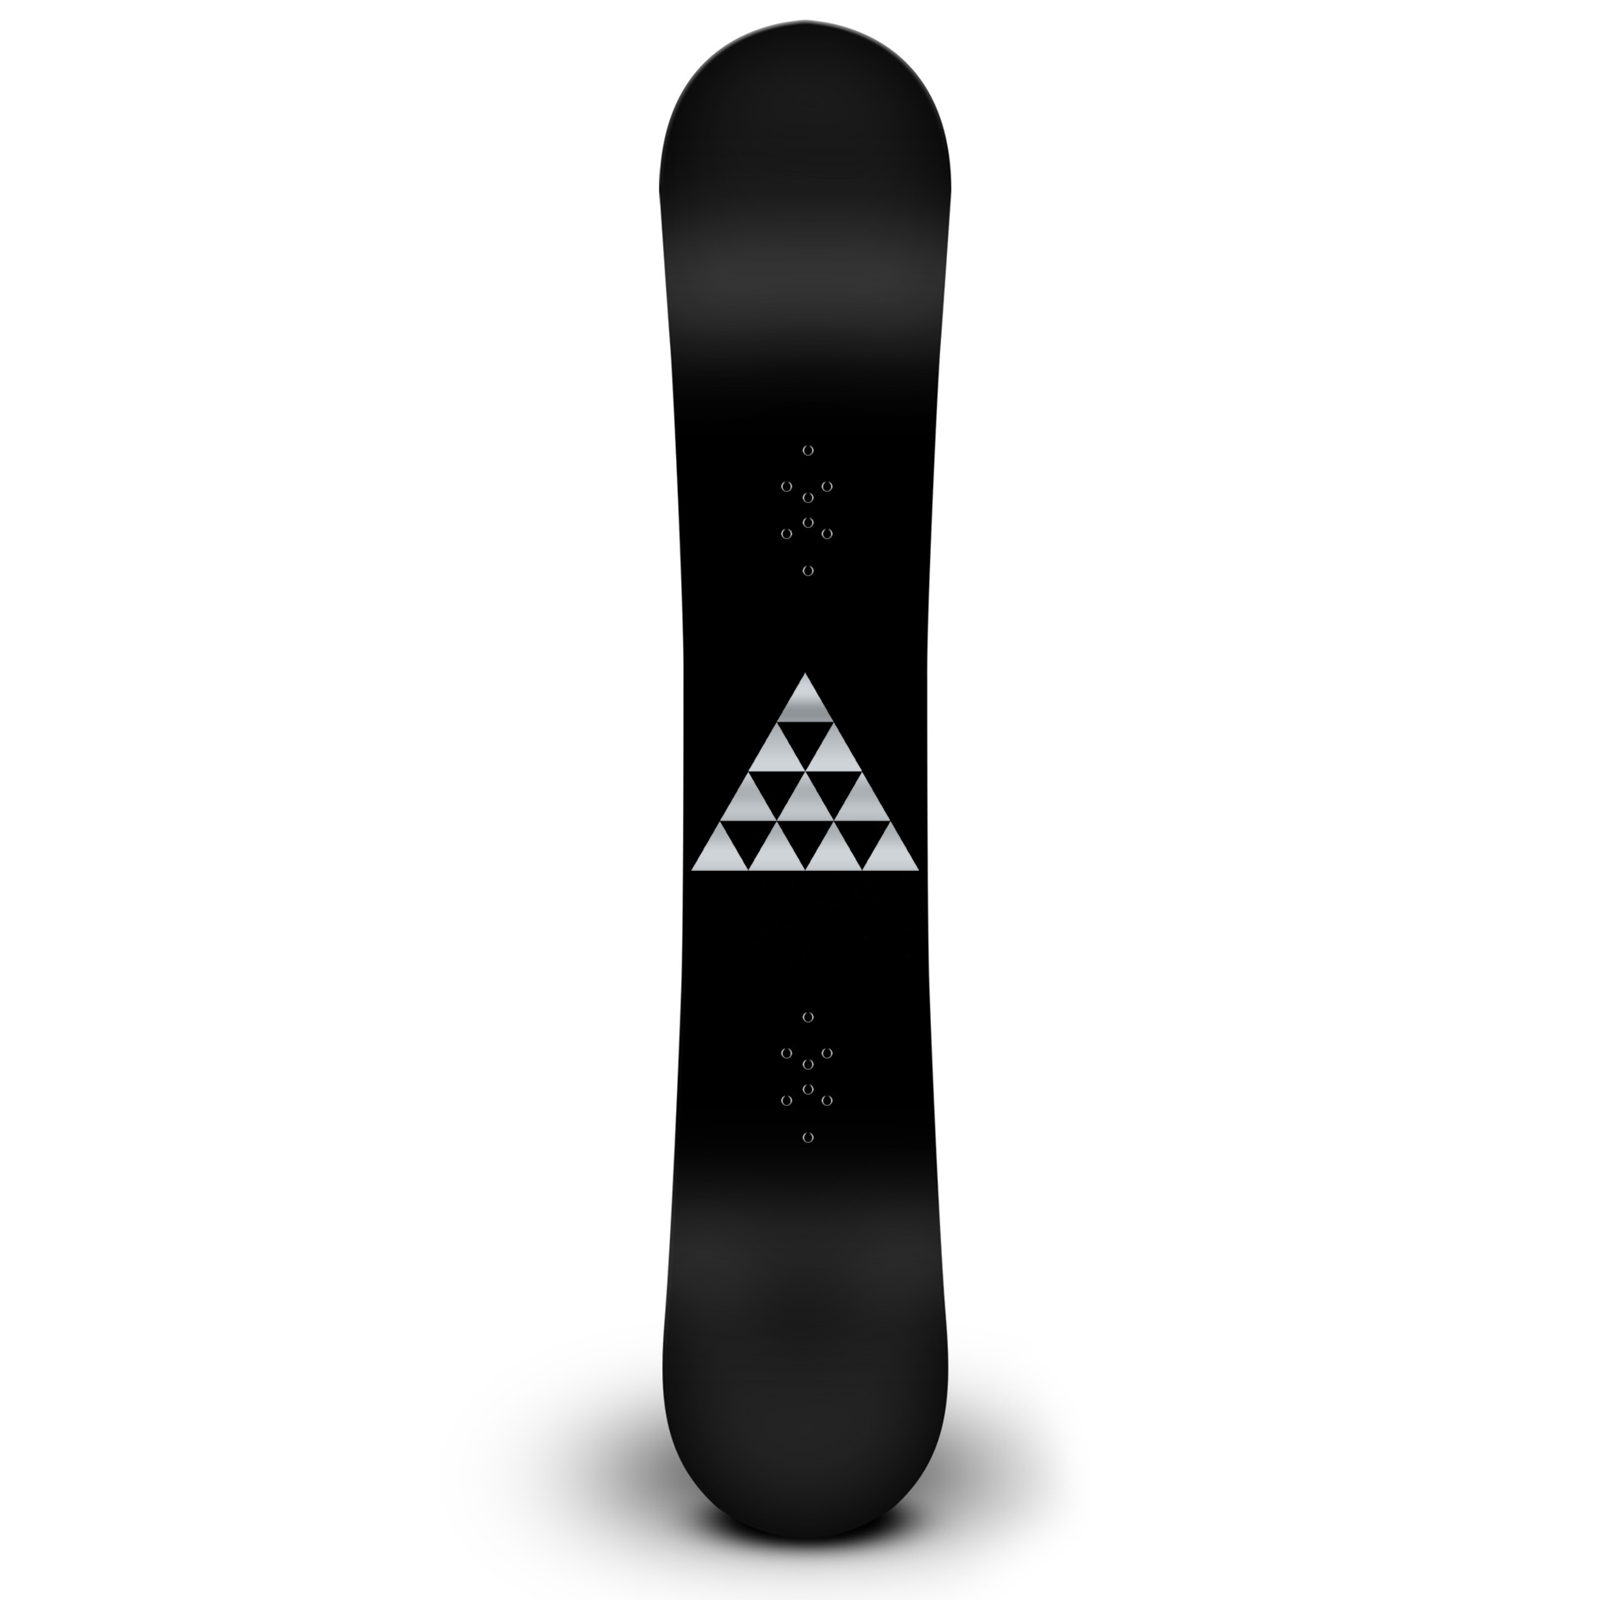 Retro Triangles Silhouette Snowboard Sticker All Weather Vinyl Decal